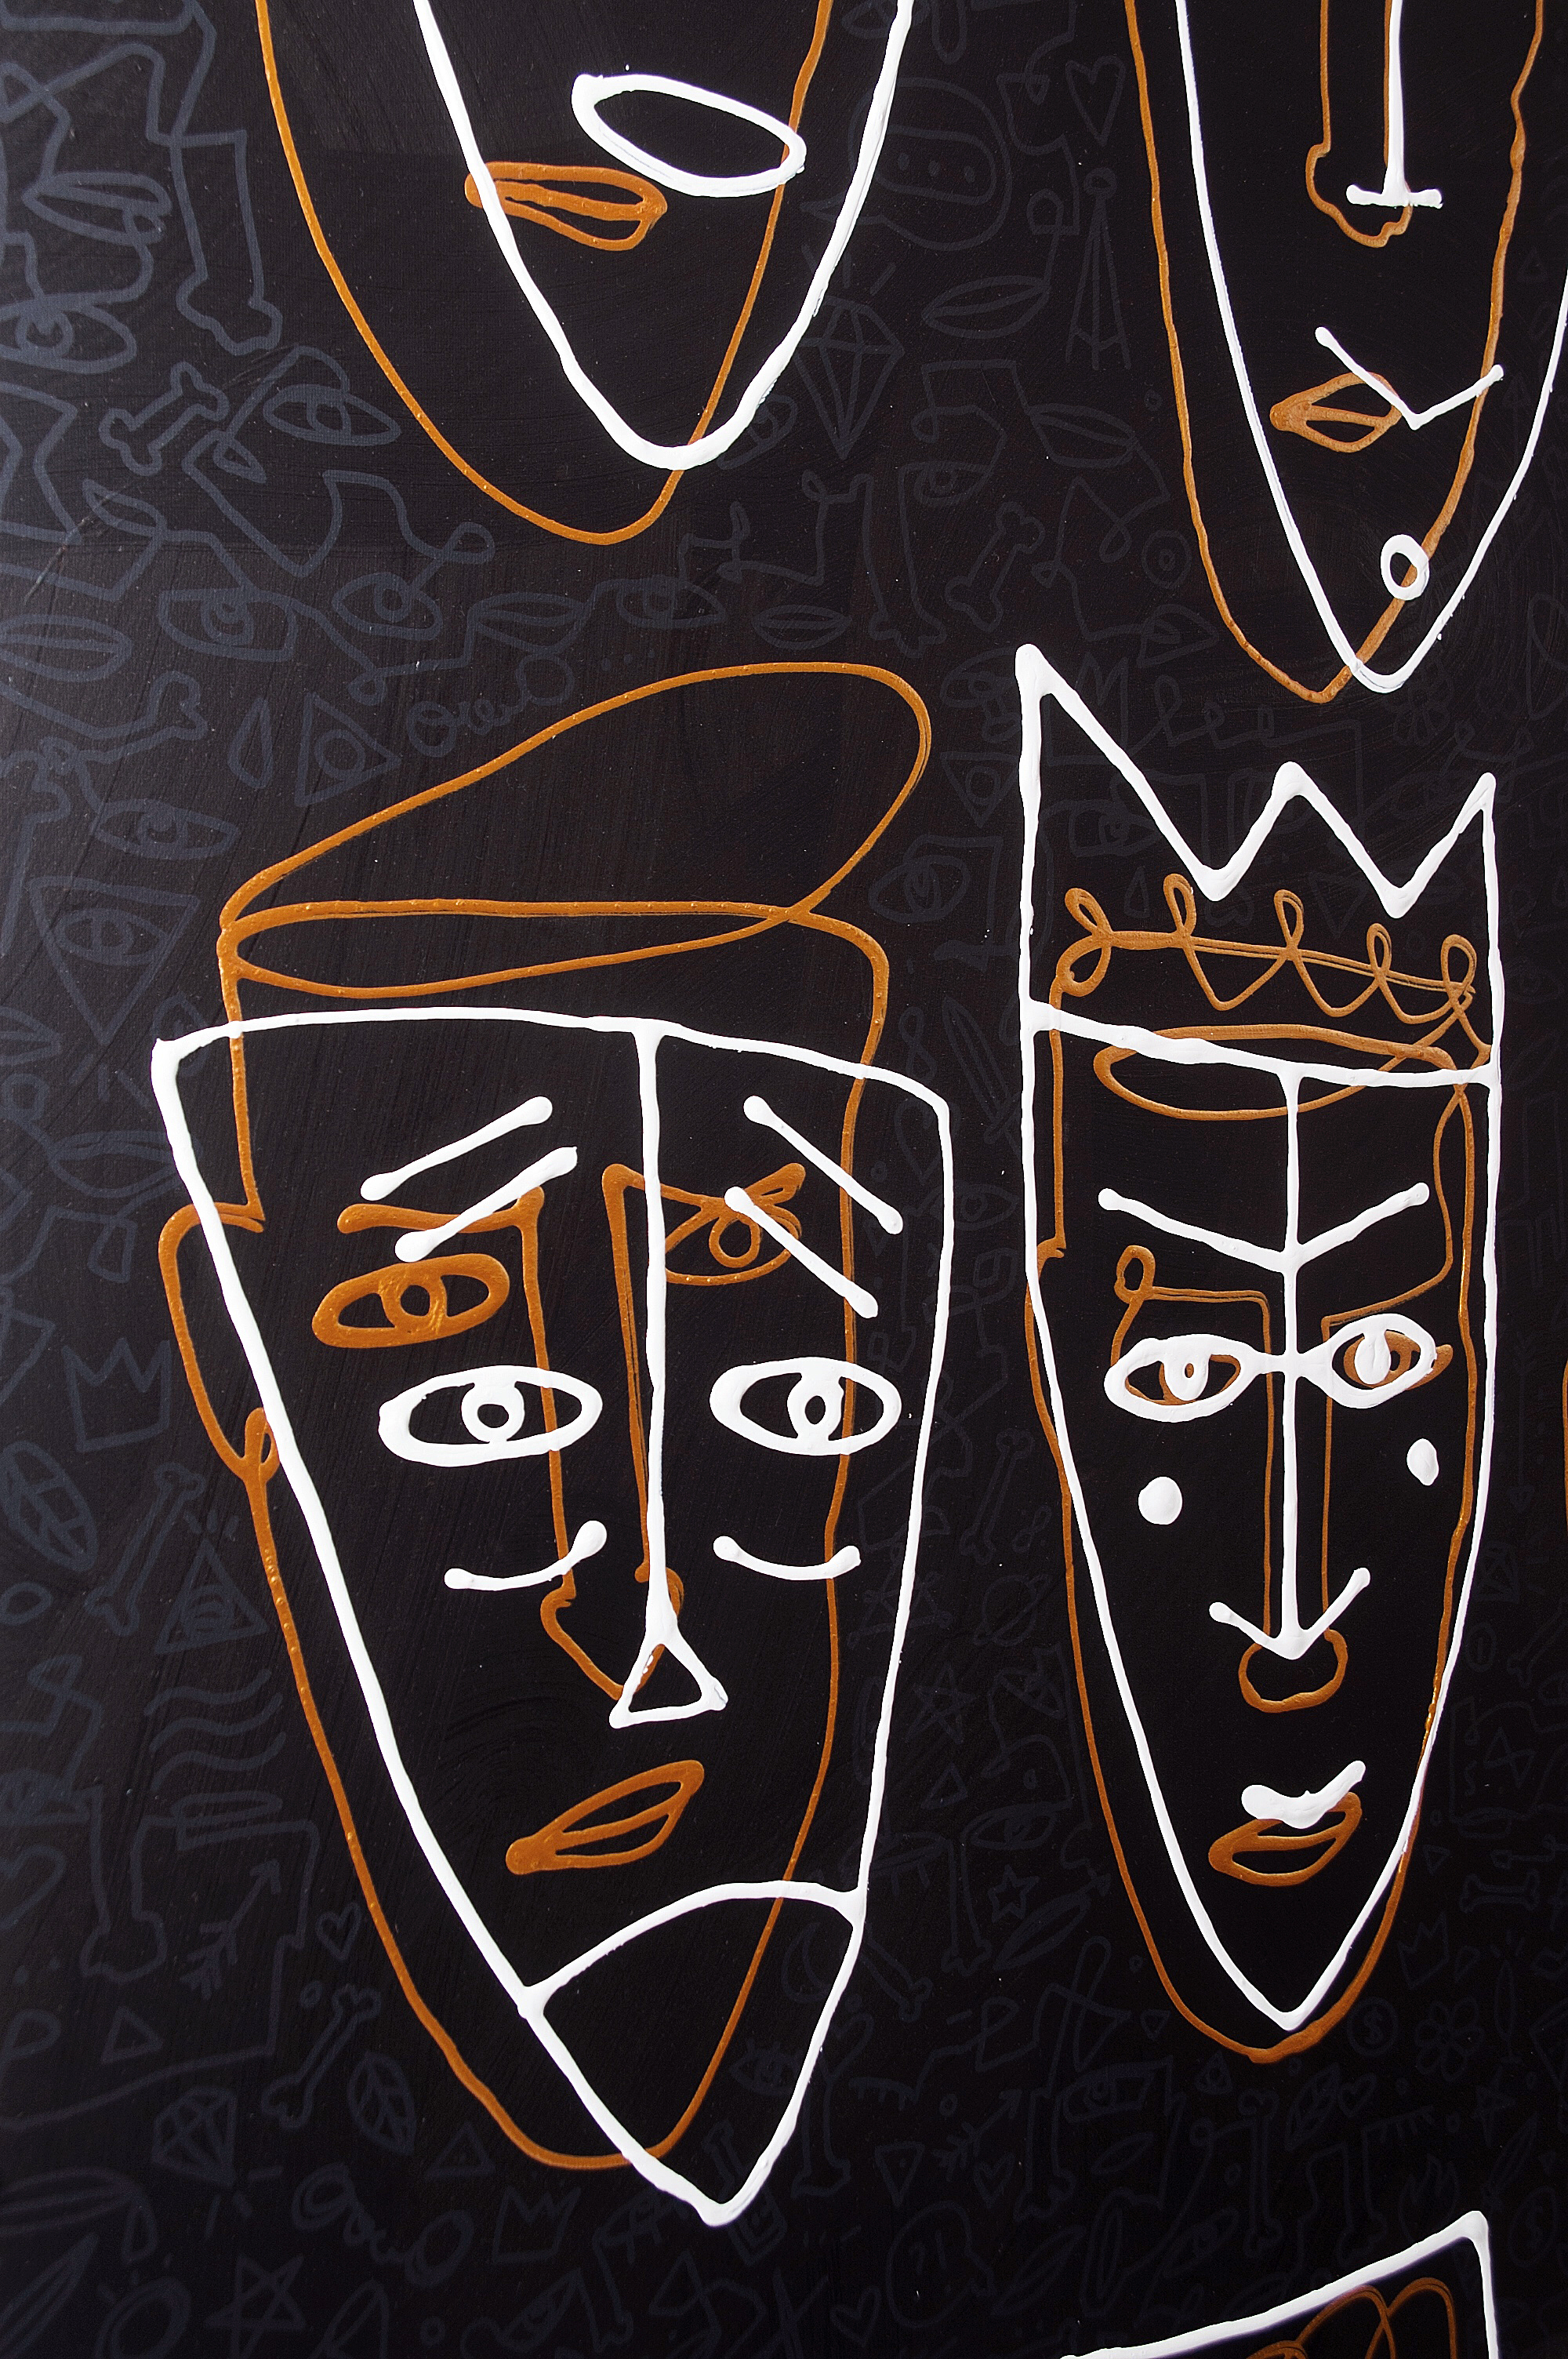 Who am I? - contemporary artwork - monoline white and gold faces on black - masks on faces - pattern with objects on the back